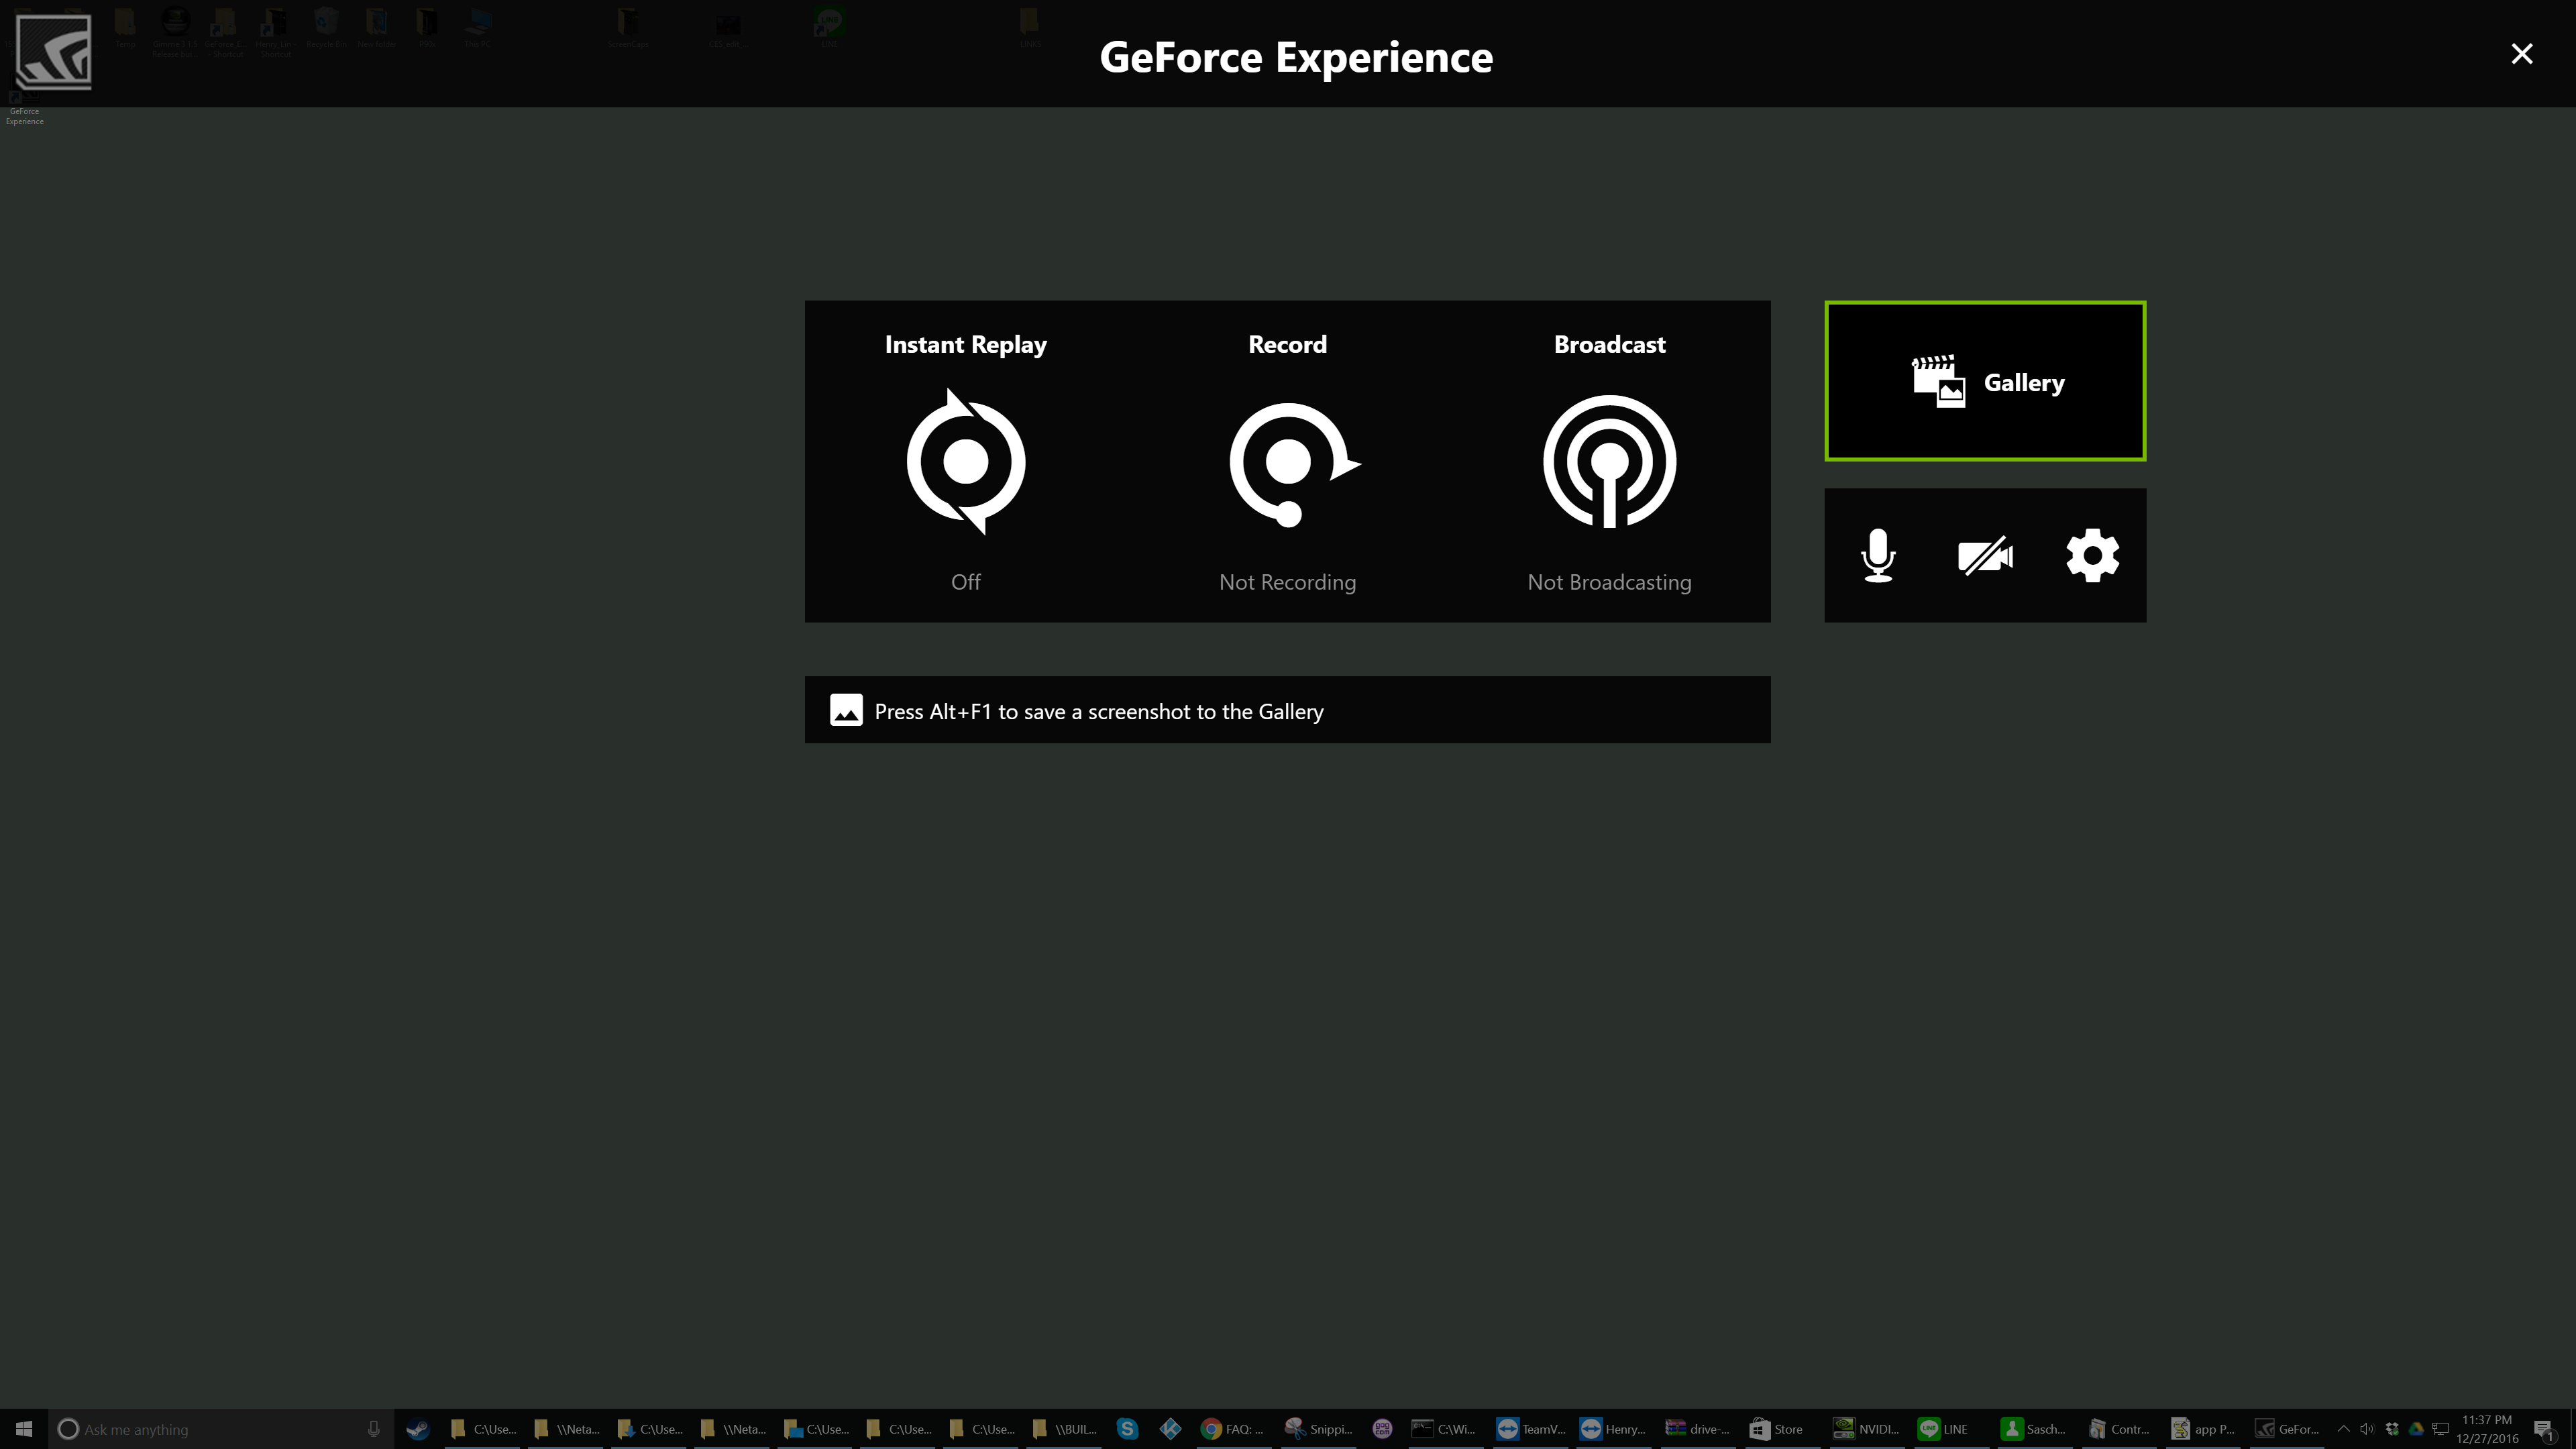 GeForce Experience Connects To Facebook - Share Straight ...